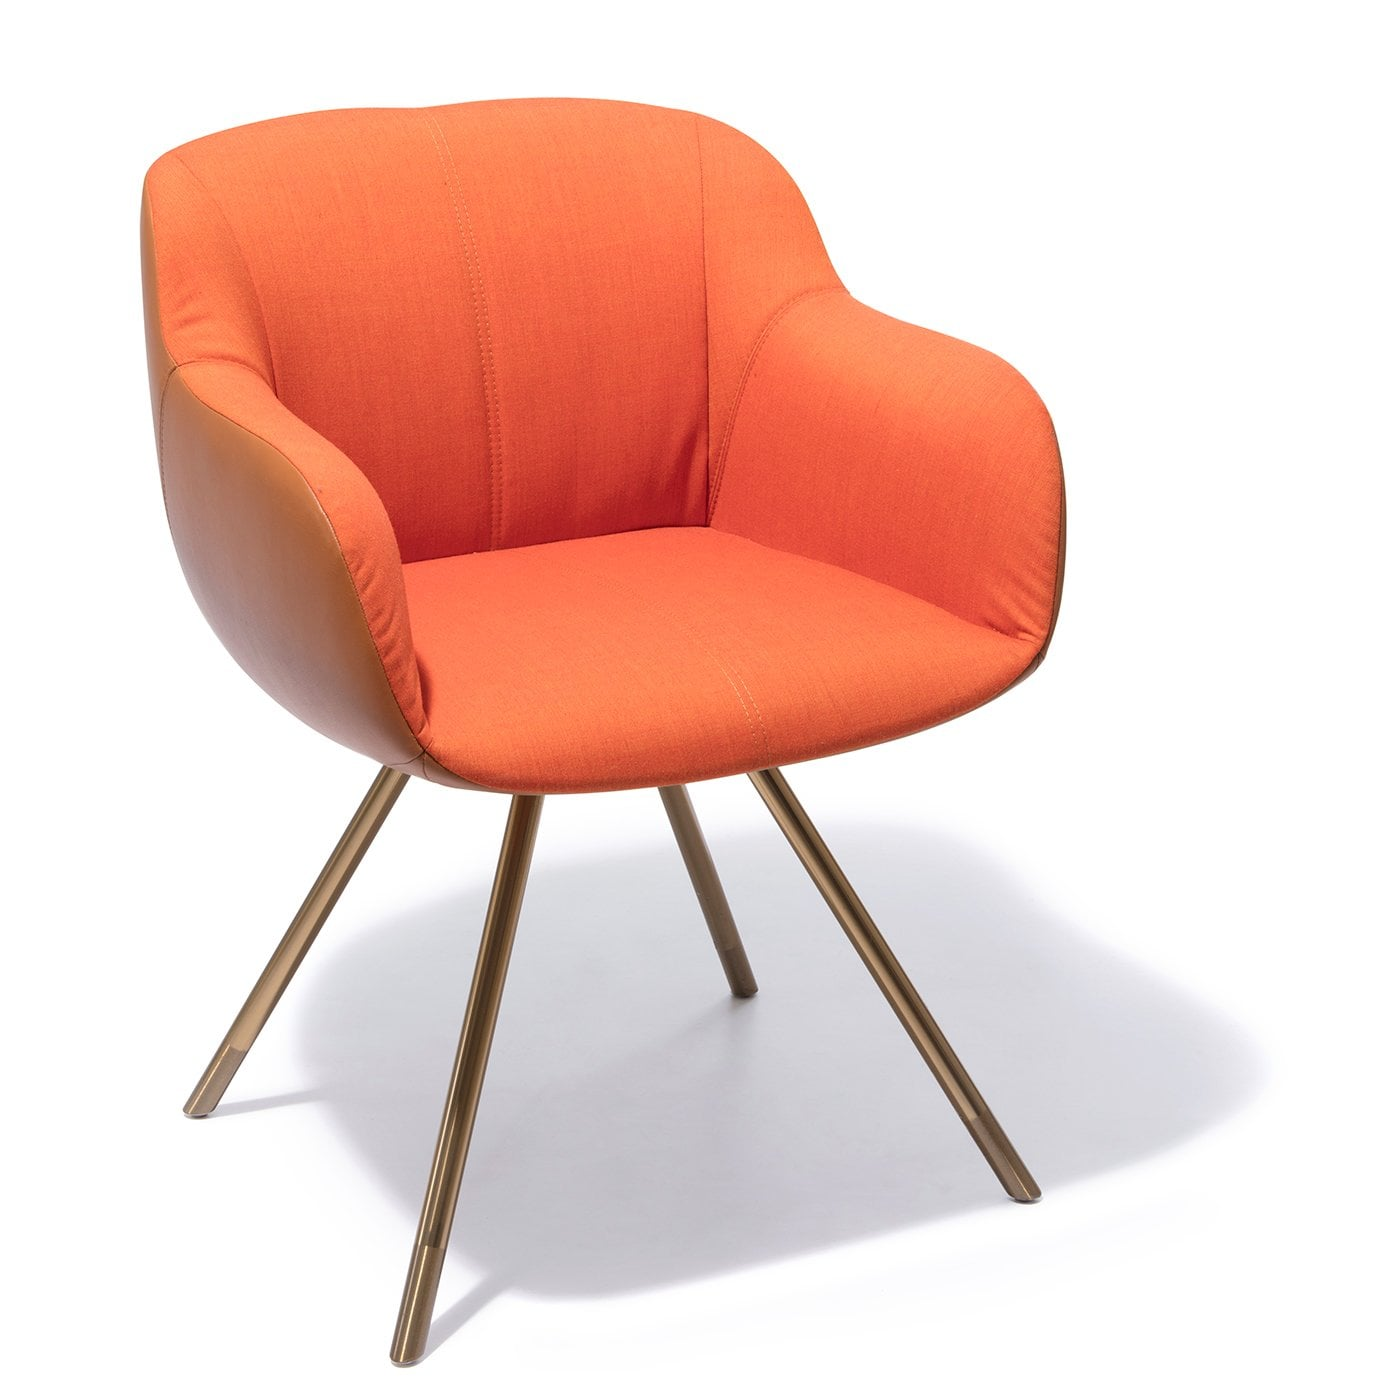 SHELL Orange/Cognac Fabric/Leather Armchair | Rosenthal ...